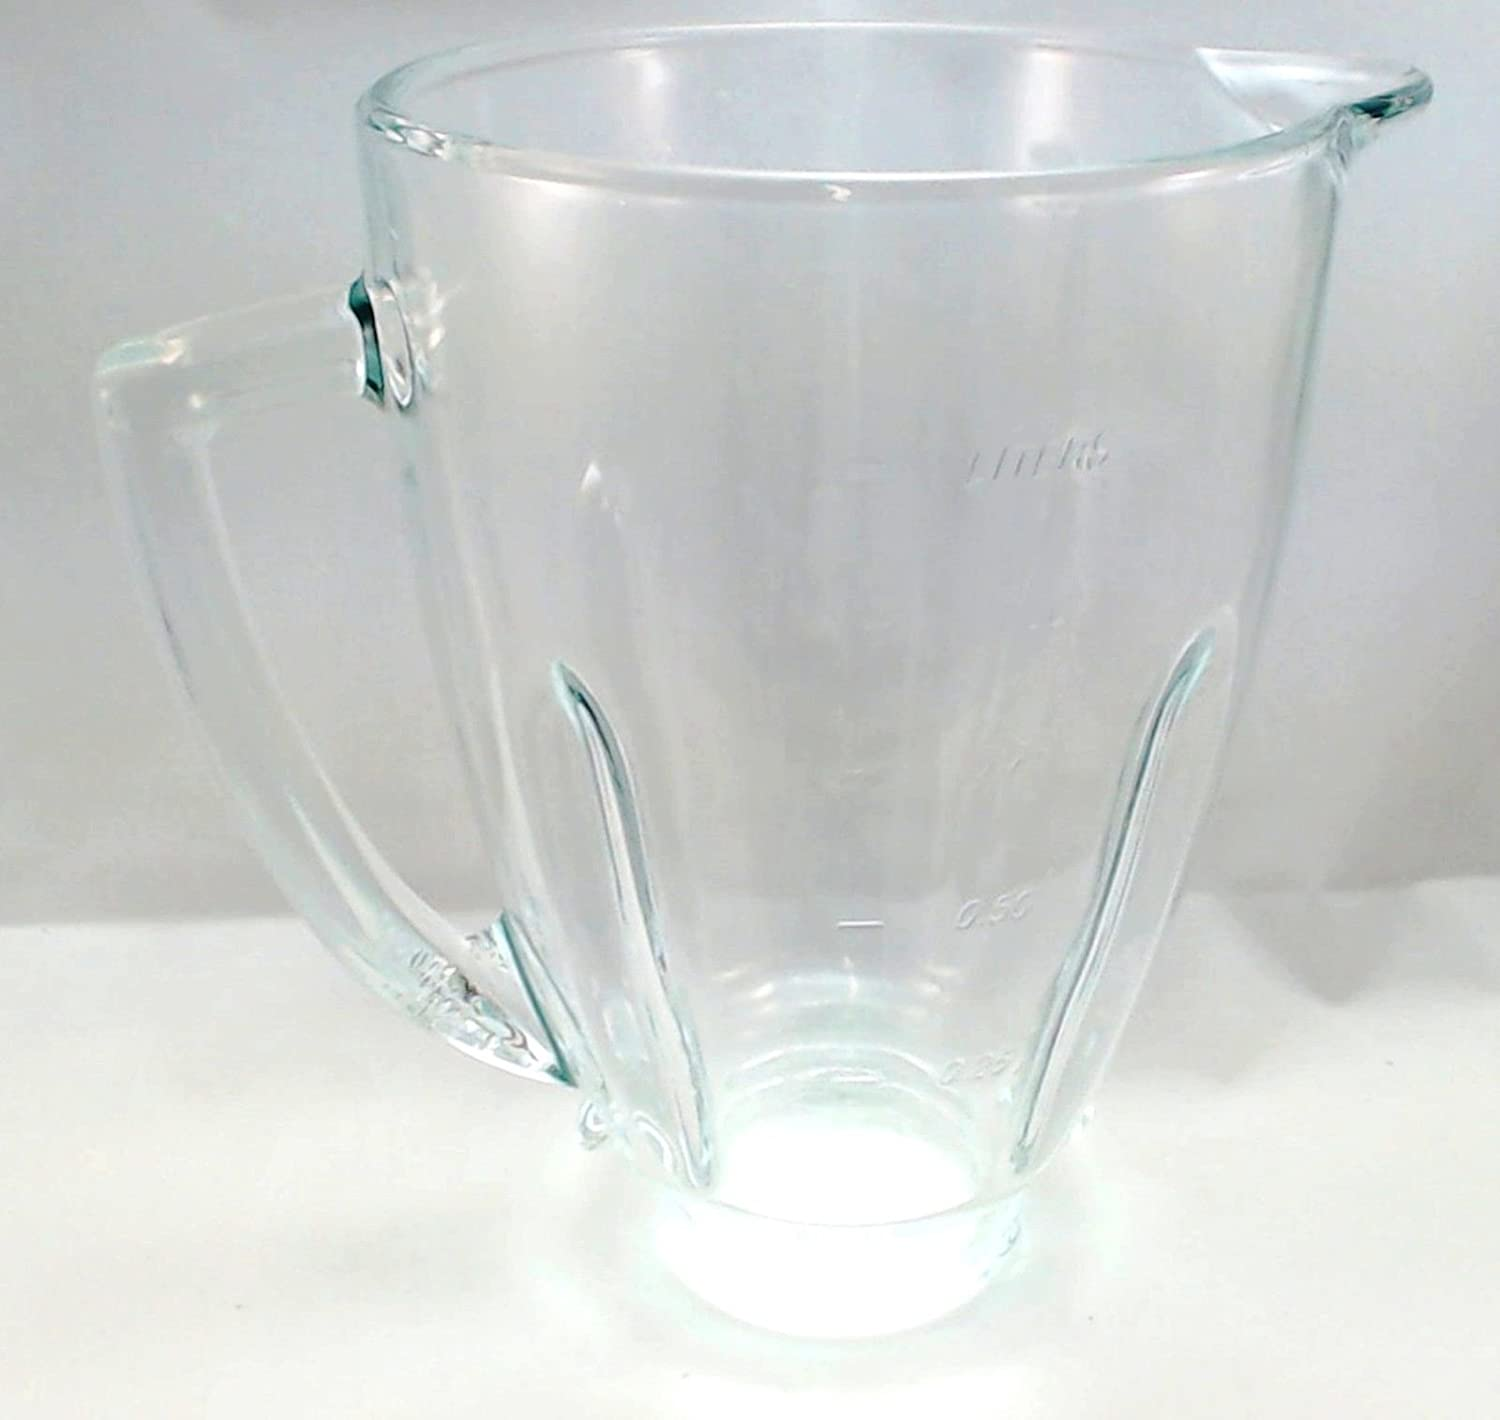 Oster 124461-000-000 Replacement Glass Blender Jar, 6-Cup, Clear CECOMINOD091269